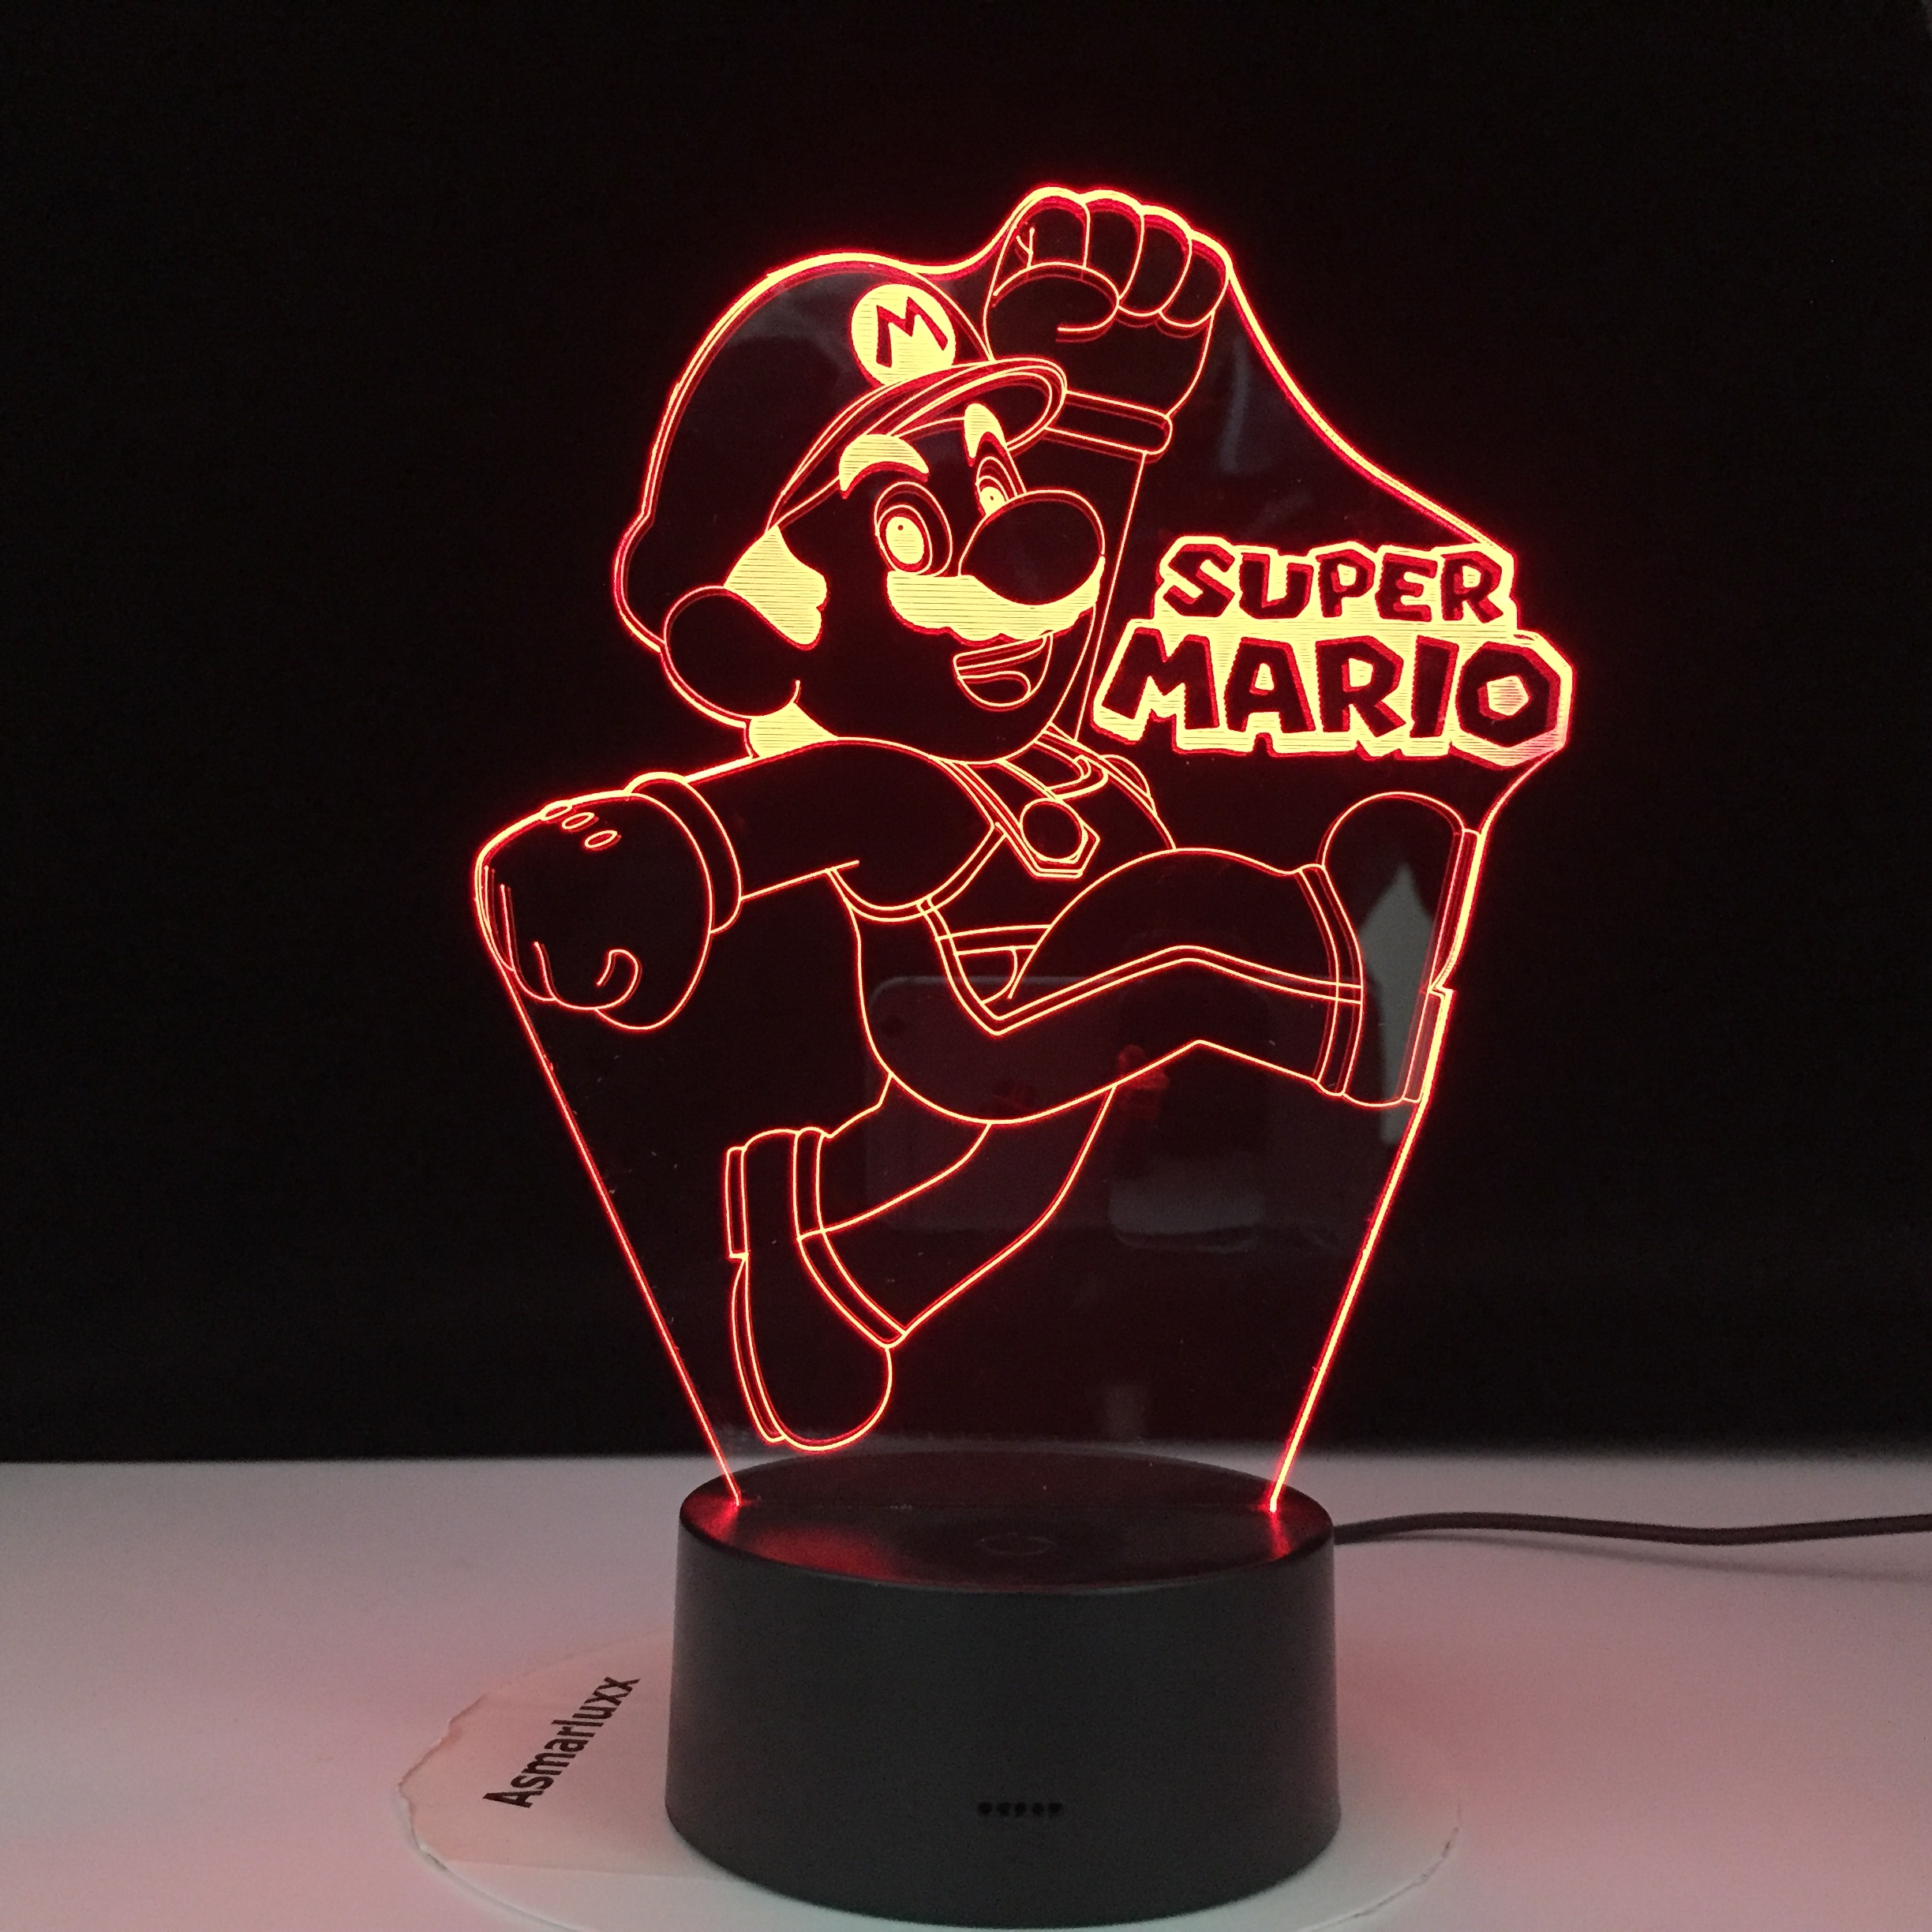 Super Mario Yoshi 3D LED USB Lamp Cartoon Game Figure Baby Lava Table Night Light Child Novelty Gift Home Office Drop Shipping